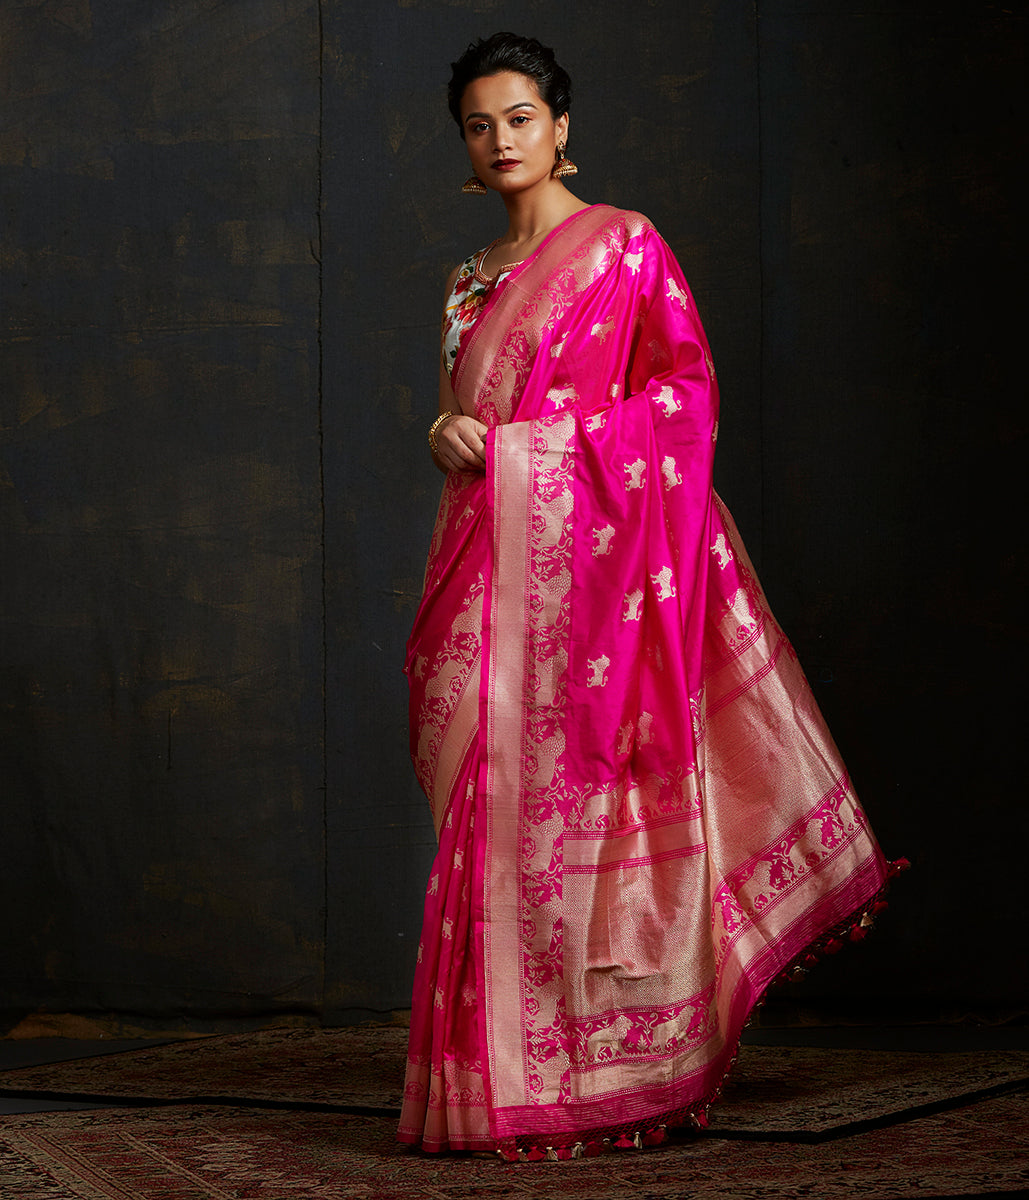 Hot Pink kadhwa  boota saree with lion motifs and rich shikargah border